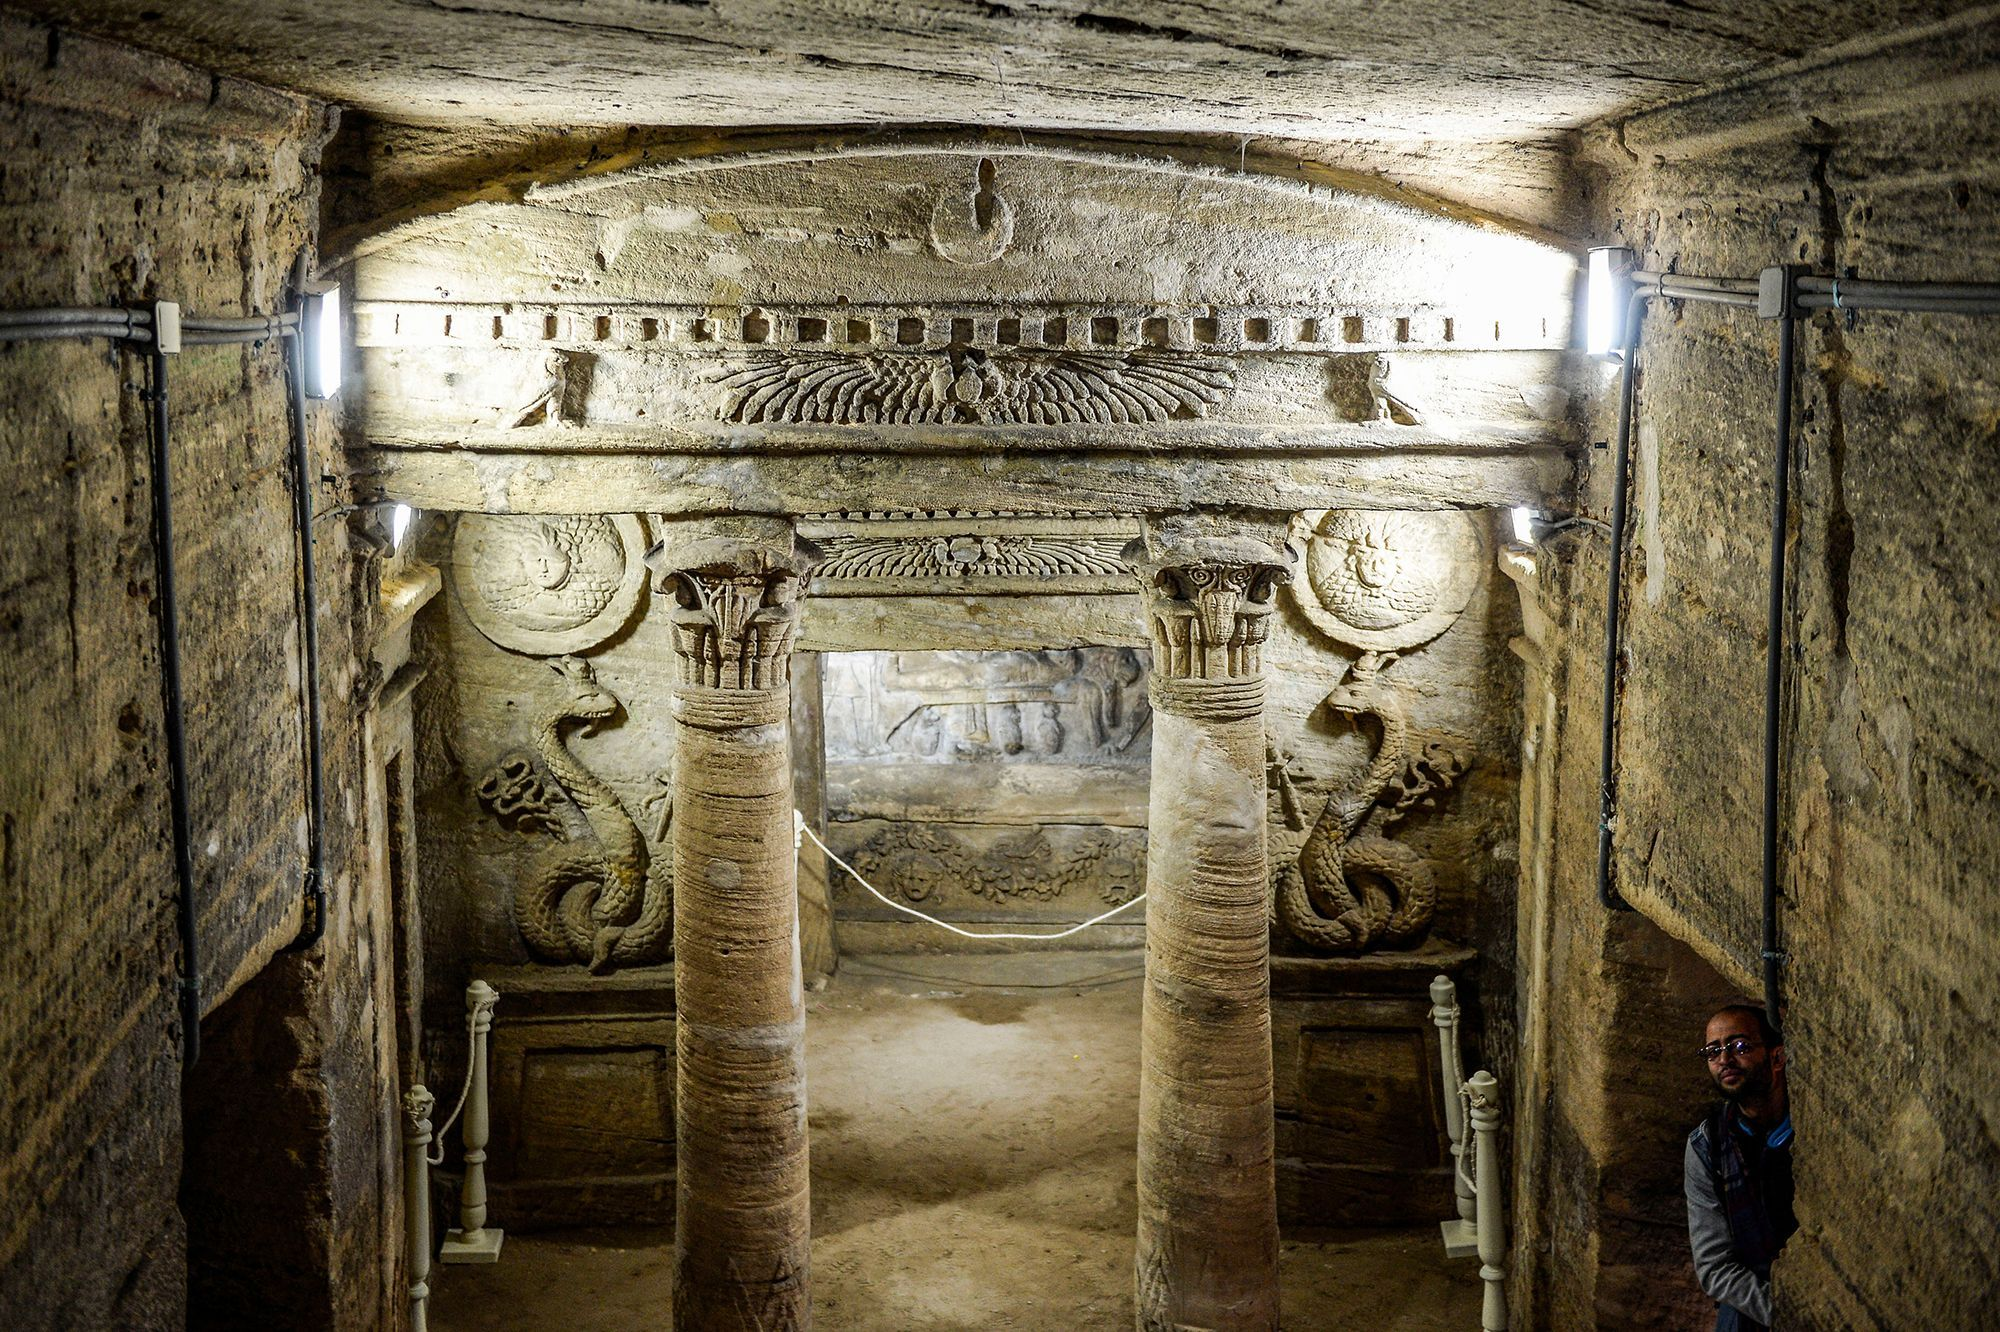 Greco-Roman-Egyptian catacomb saved from water